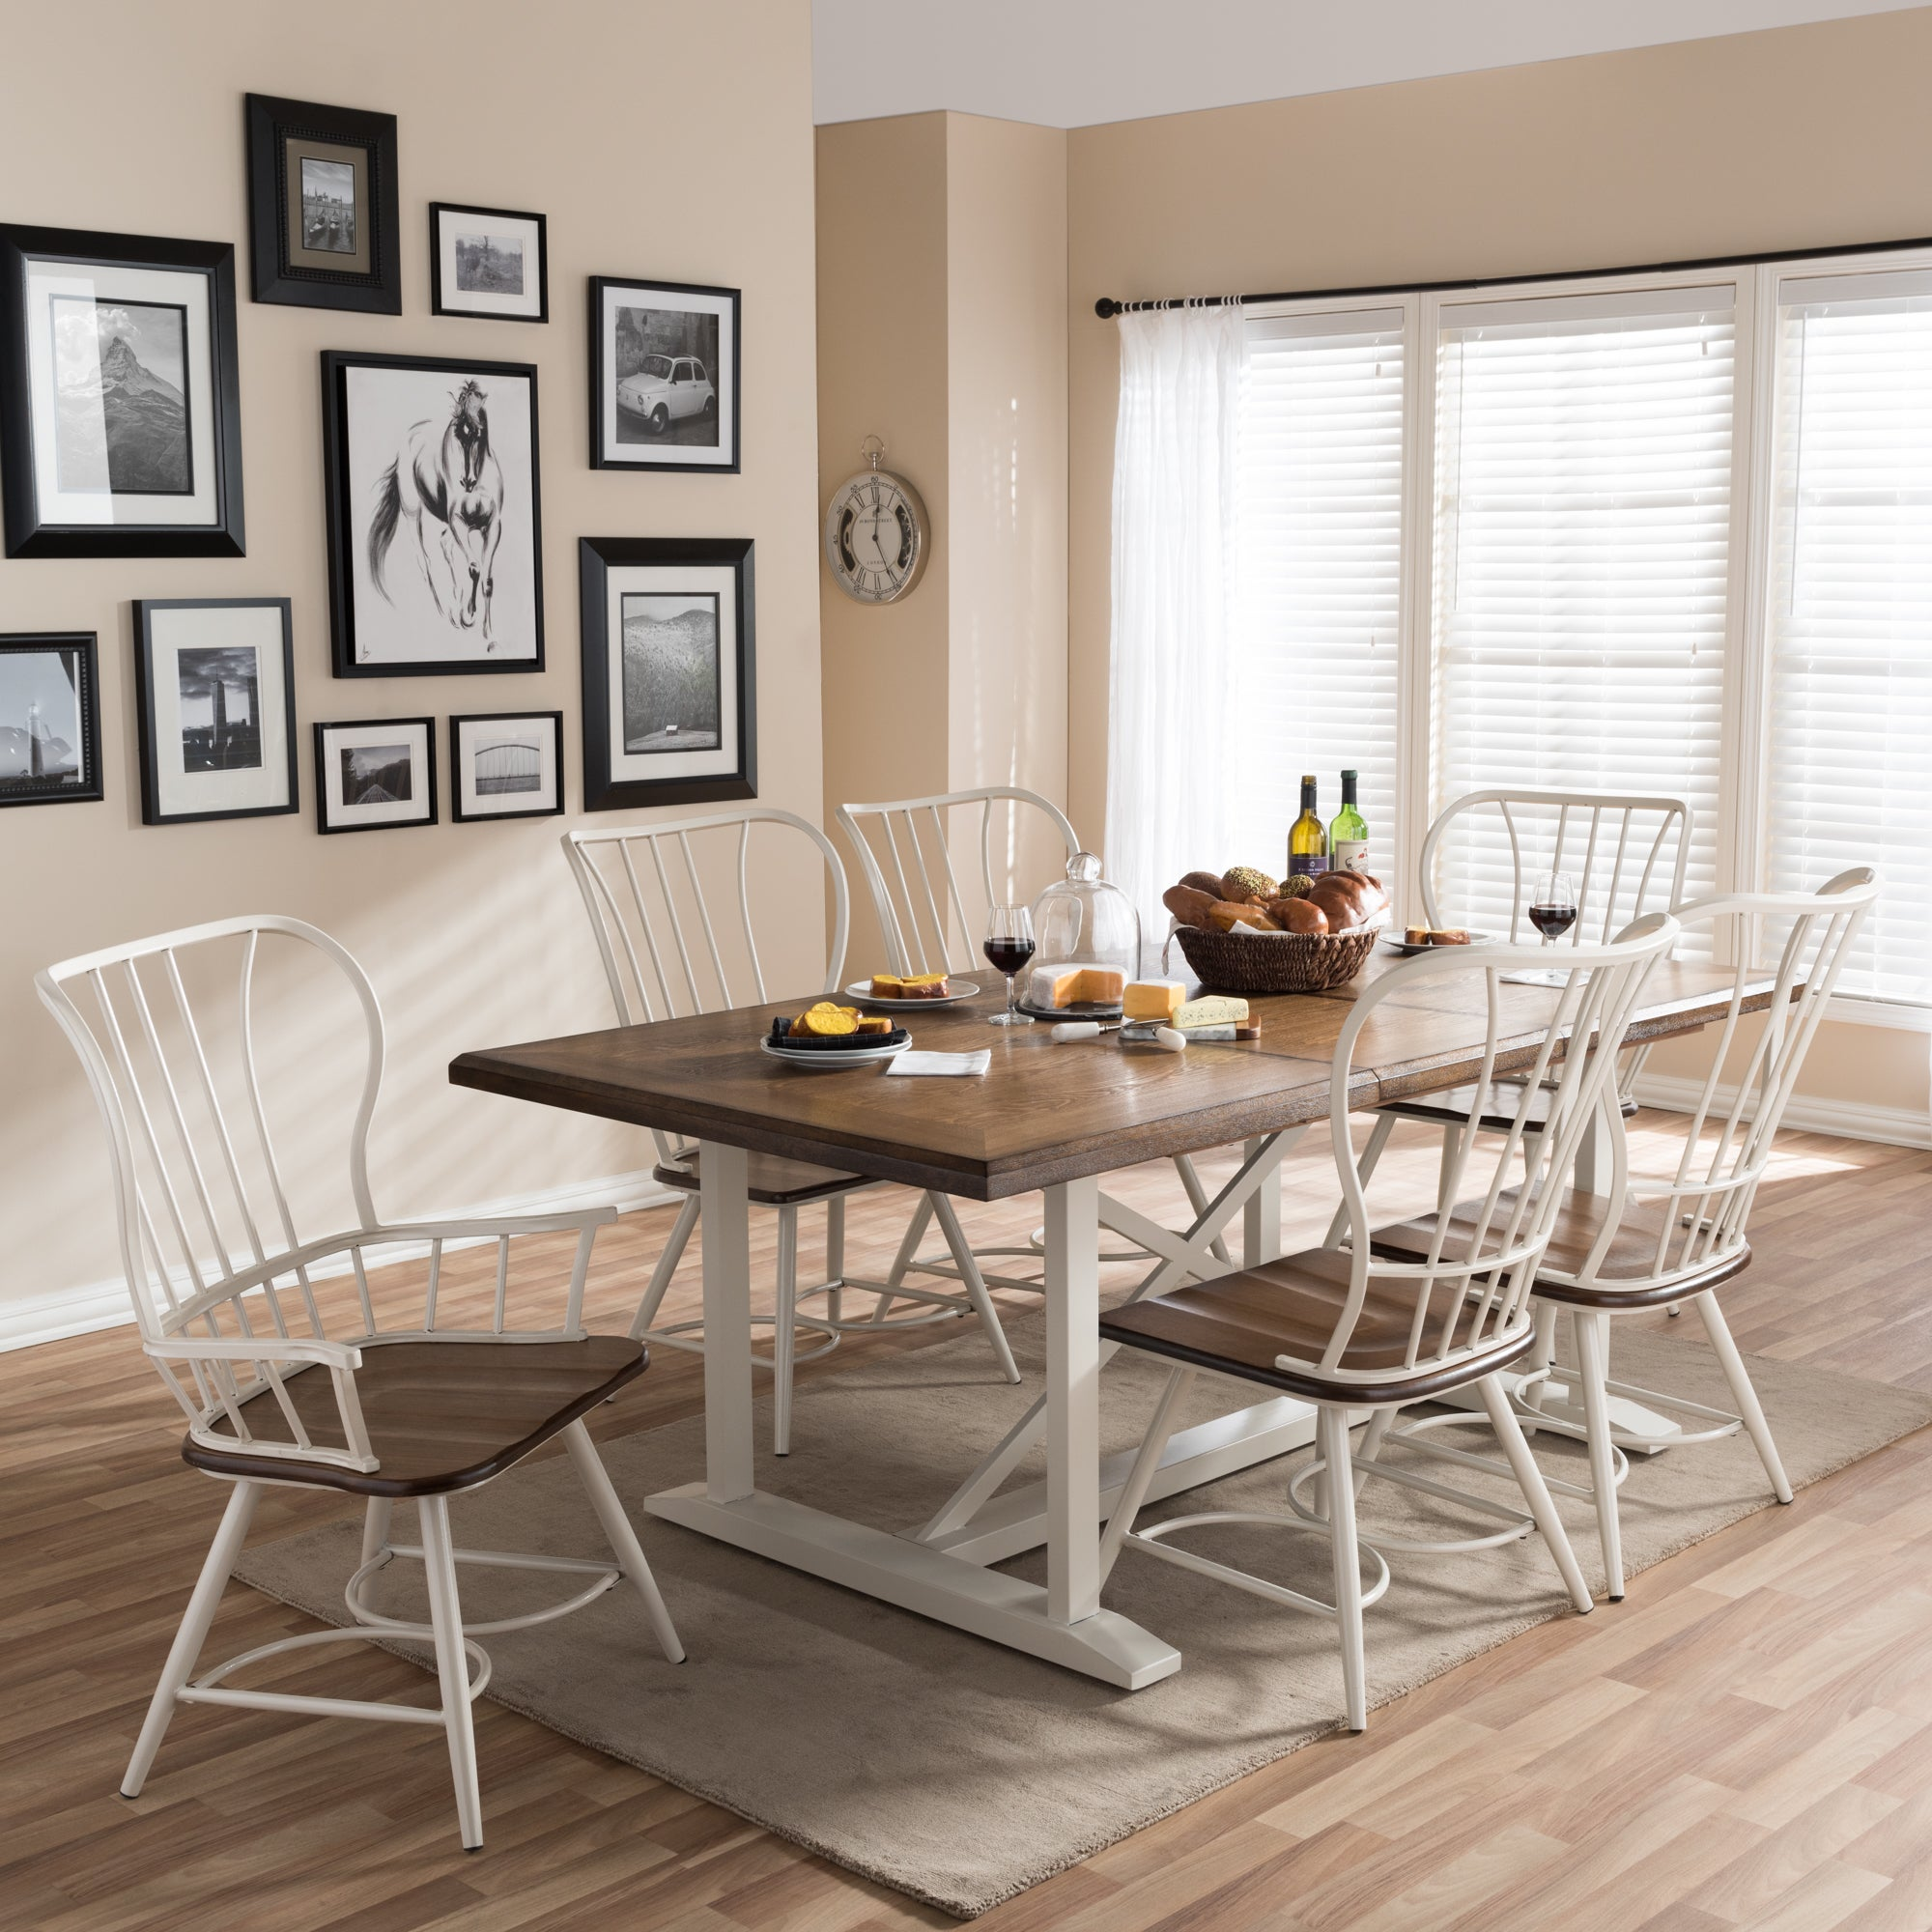 Longford Wood And Metal Vintage Industrial 7 Piece Dining Set White